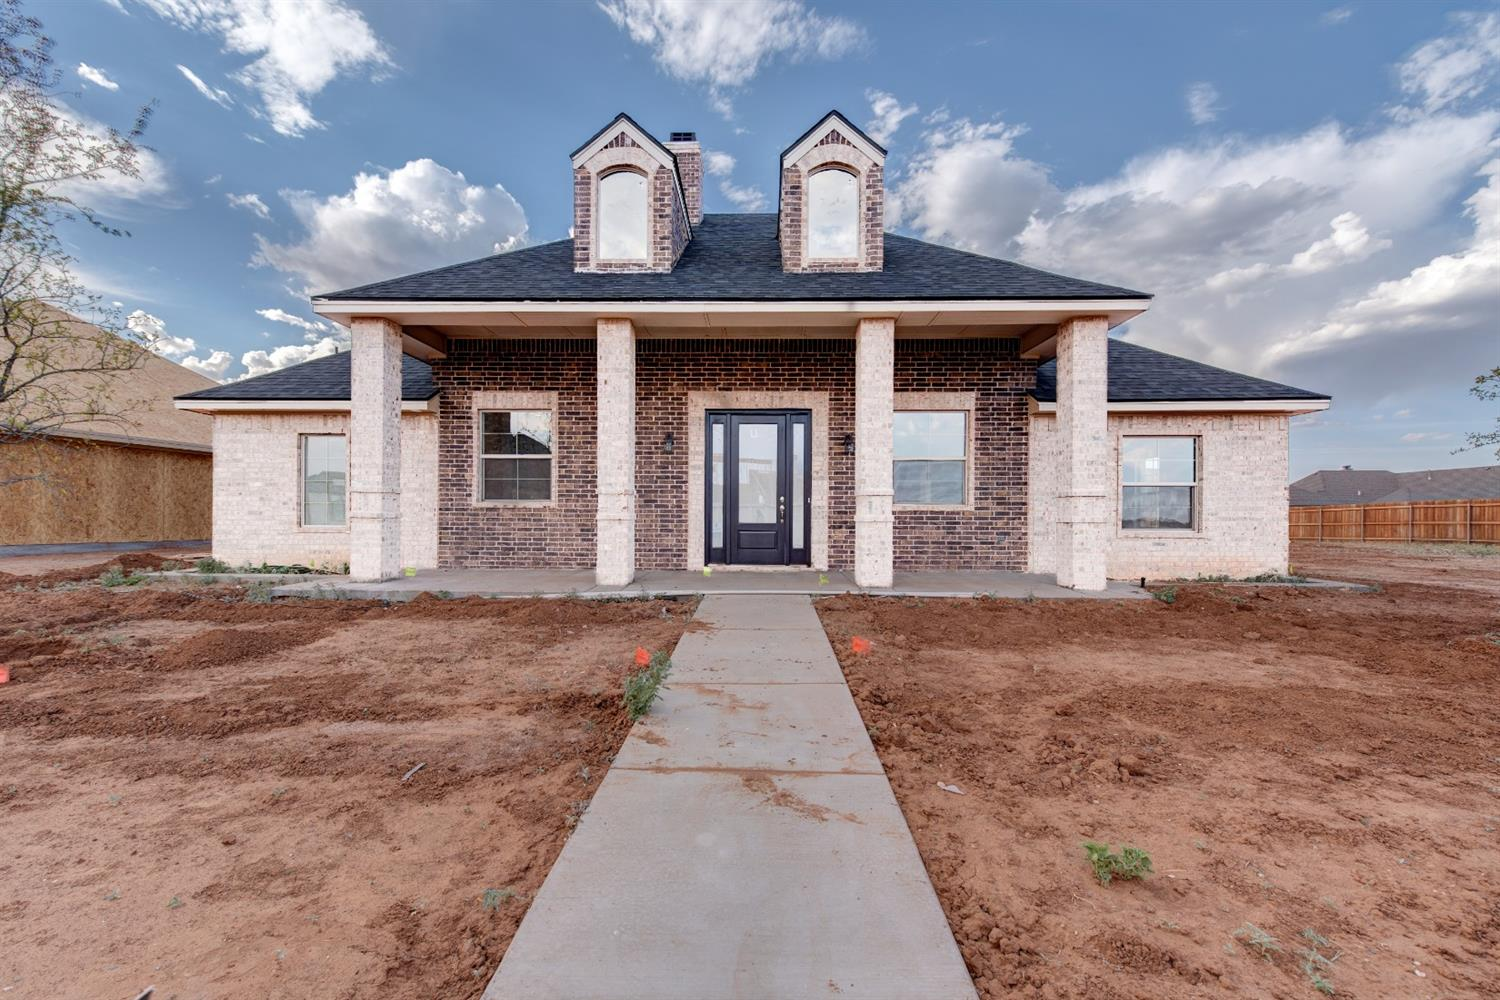 Beautiful new construction on an oversized lot in Frenship ISD. This 4/3/2 offers an open layout with plenty of upgrades. 16' vaulted ceilings, a 2nd isolated bedroom/bathroom, soft close hinges and upgraded appliances. The fireplace is bricked to the ceiling and flanked by built-in cabinetry and floating shelves.The master closet opens to the laundry room. Oversized 20x24 garage with an 8x18' door.